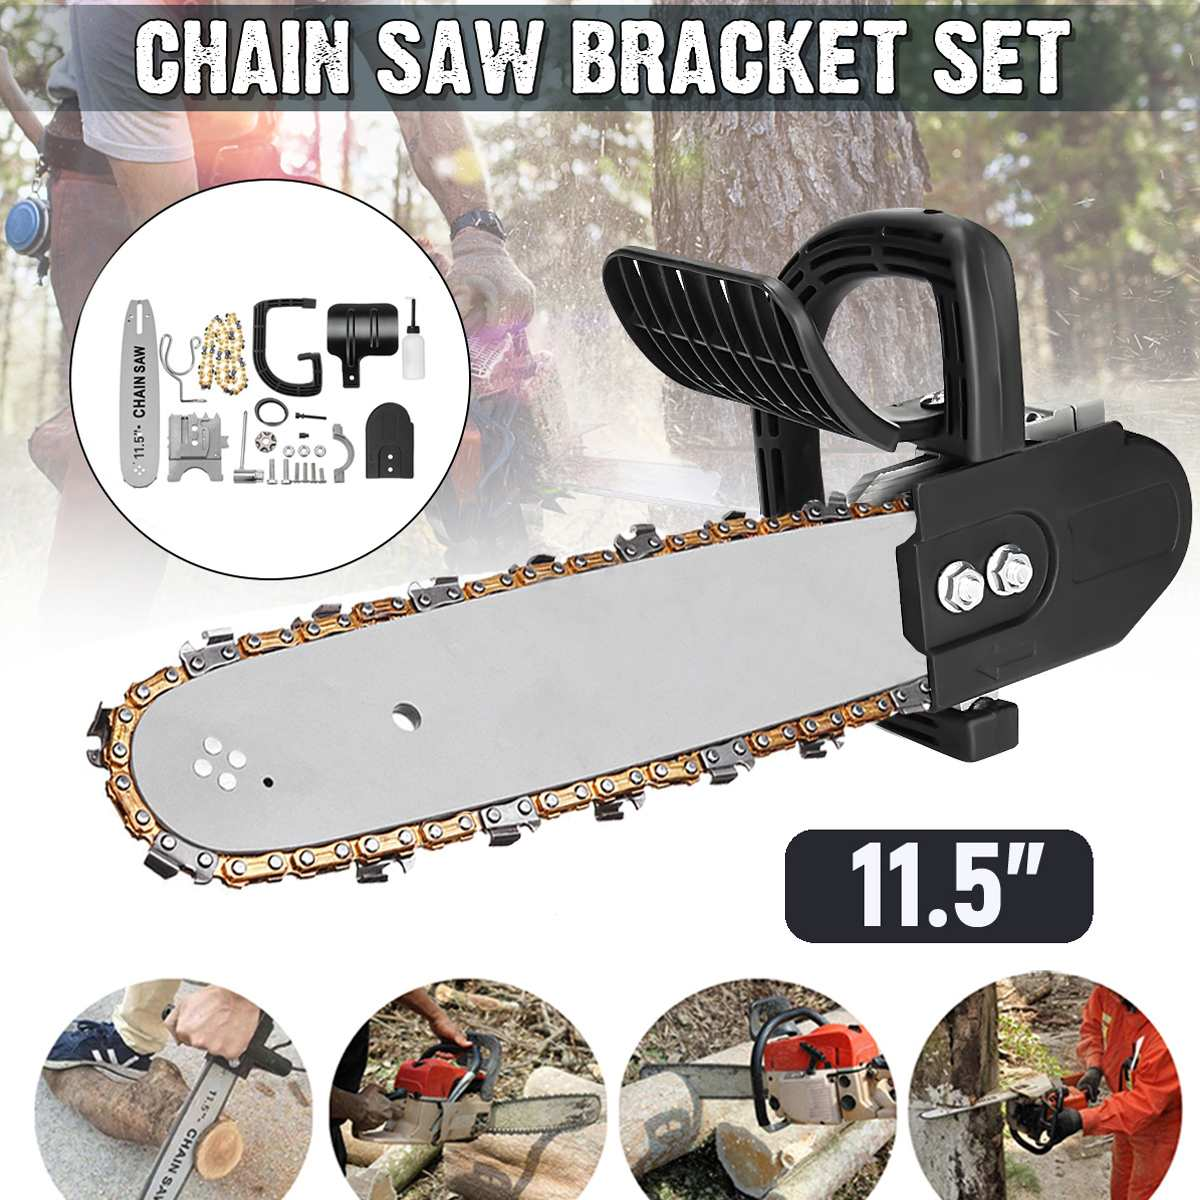 11.5 Inch Woodworking Angle Grinder Chainsaw Bracket Kit Steel Chain Saw Stand Bracket Set Change Angle Grinder into Chain Saw11.5 Inch Woodworking Angle Grinder Chainsaw Bracket Kit Steel Chain Saw Stand Bracket Set Change Angle Grinder into Chain Saw